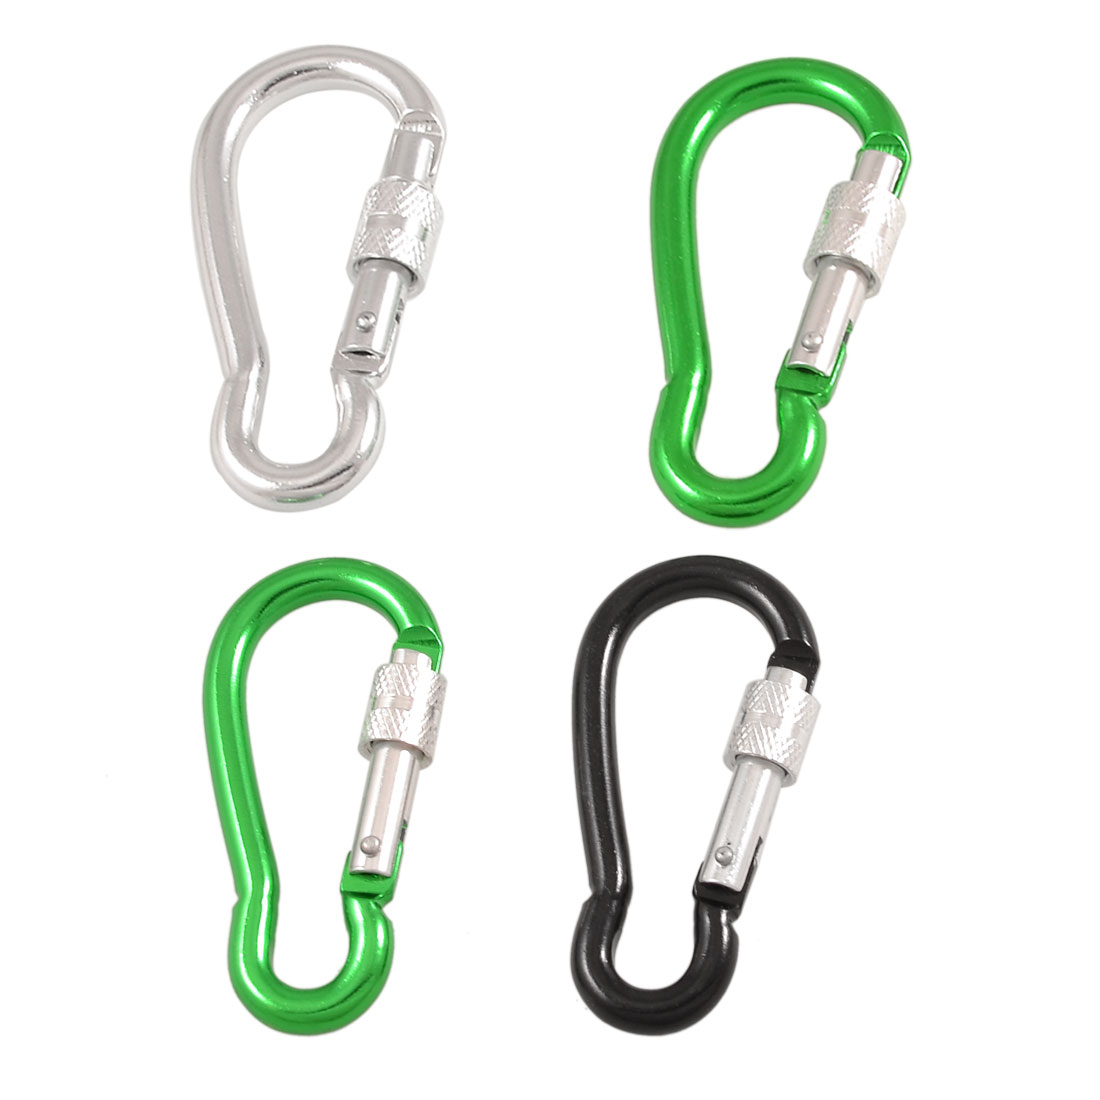 4 Pcs Assorted Color Spring Loaded Gate Aluminum Alloy Lockable Carabiner Hooks